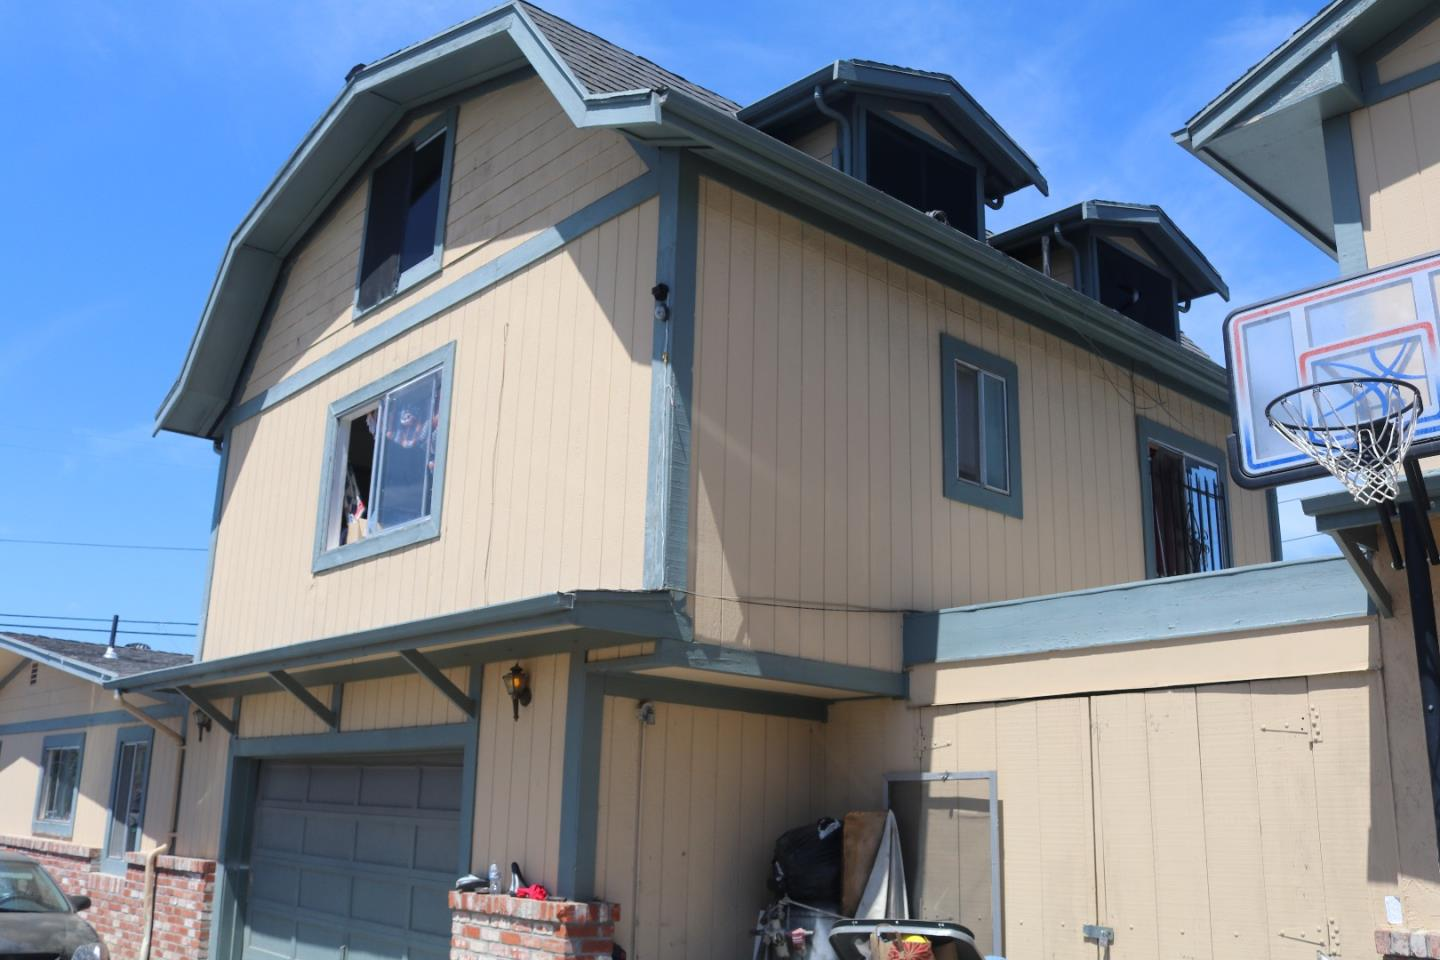 Additional photo for property listing at 21588 Banyan Street 21588 Banyan Street Hayward, Kalifornien 94541 Vereinigte Staaten